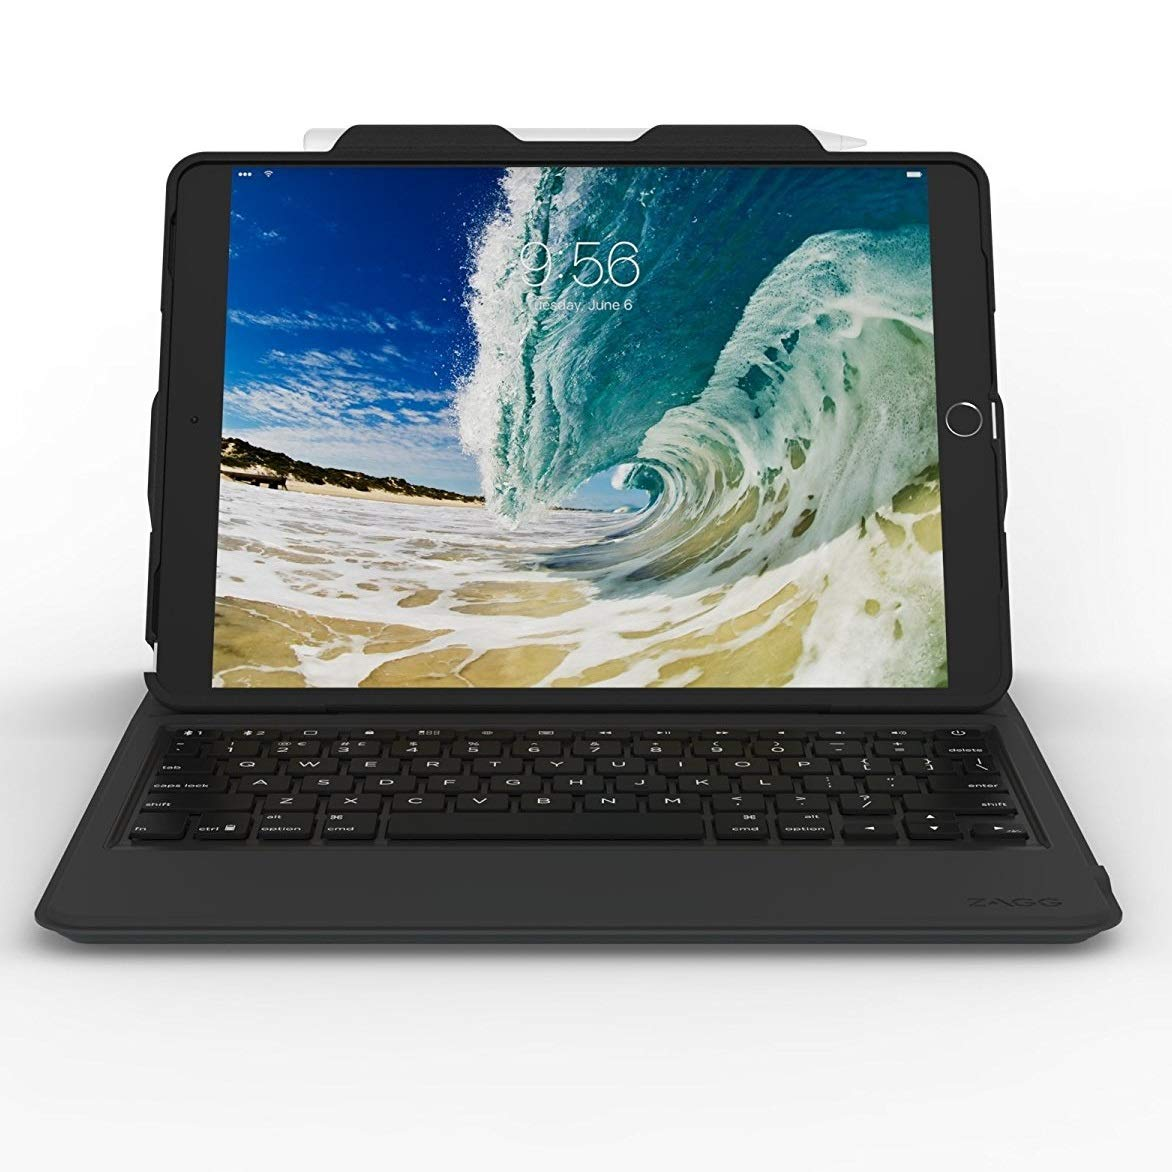 ZAGG 7 Color Backlit Case and Bluetooth Keyboard for 2017 Apple iPad Pro 10.5 and 2019 iPad Air 10.5 Black